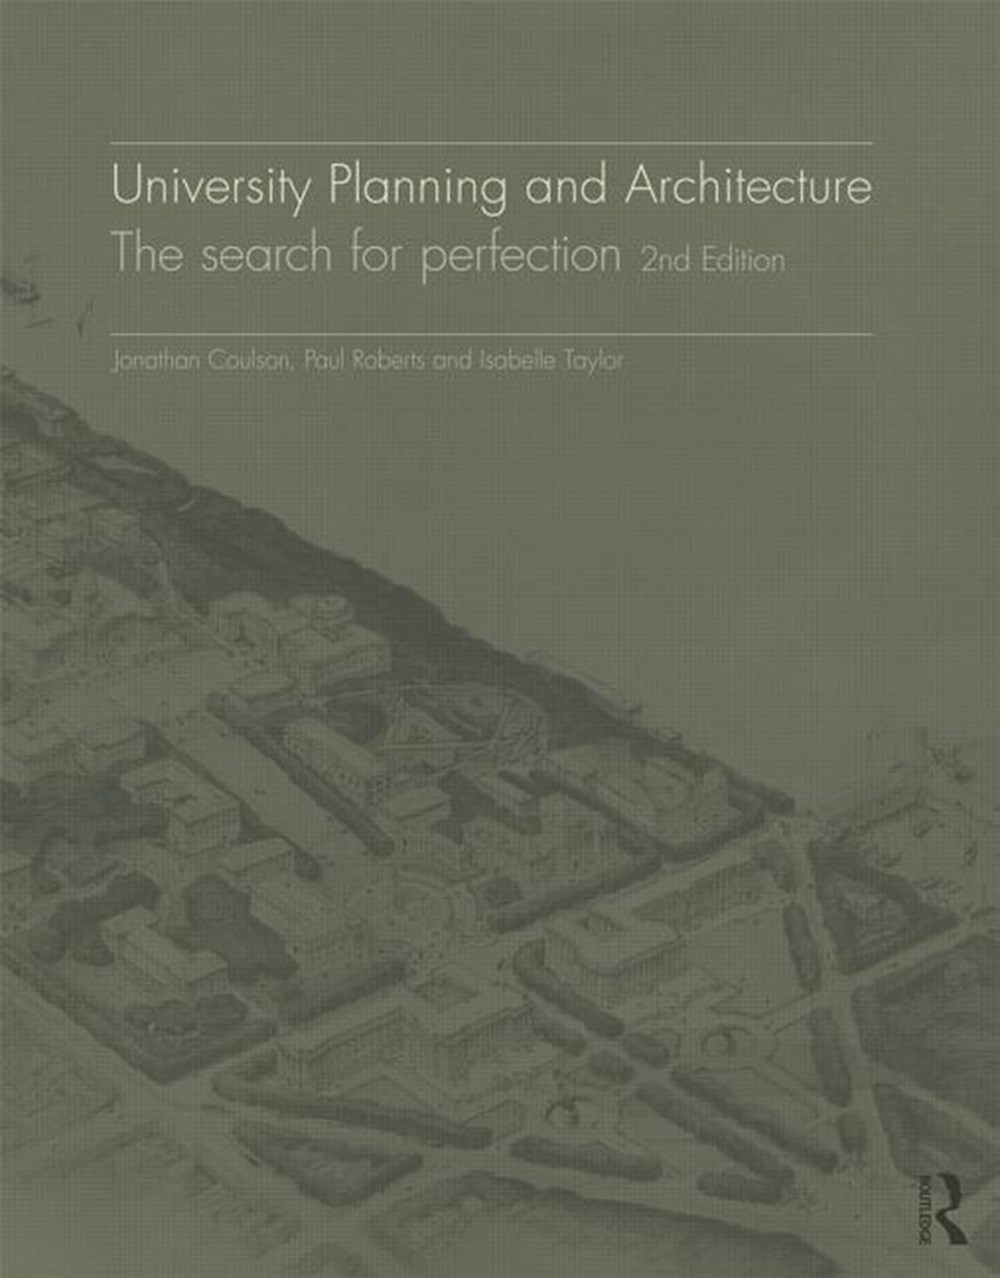 University Planning and Architecture The Search for Perfection